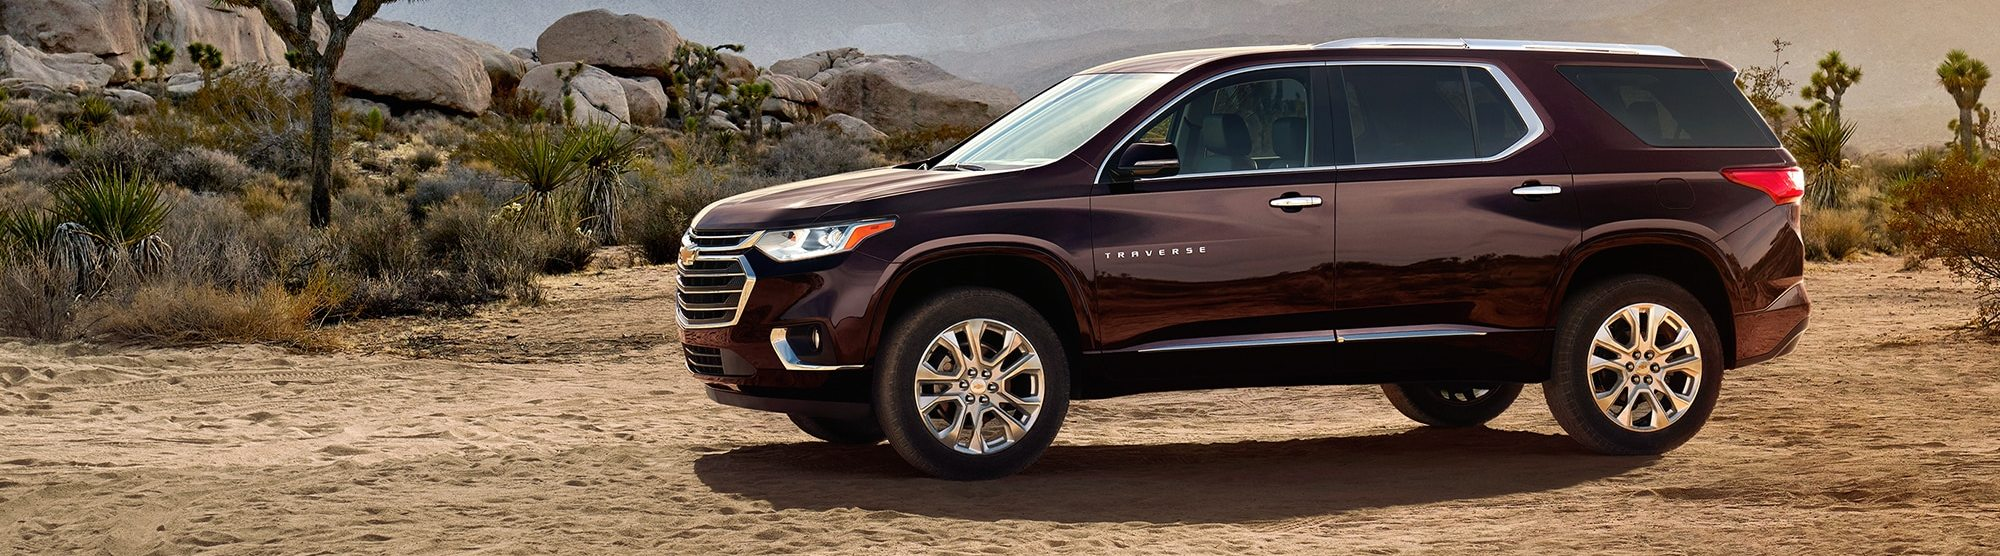 2020 Chevrolet Traverse Lease near Orland Park, IL